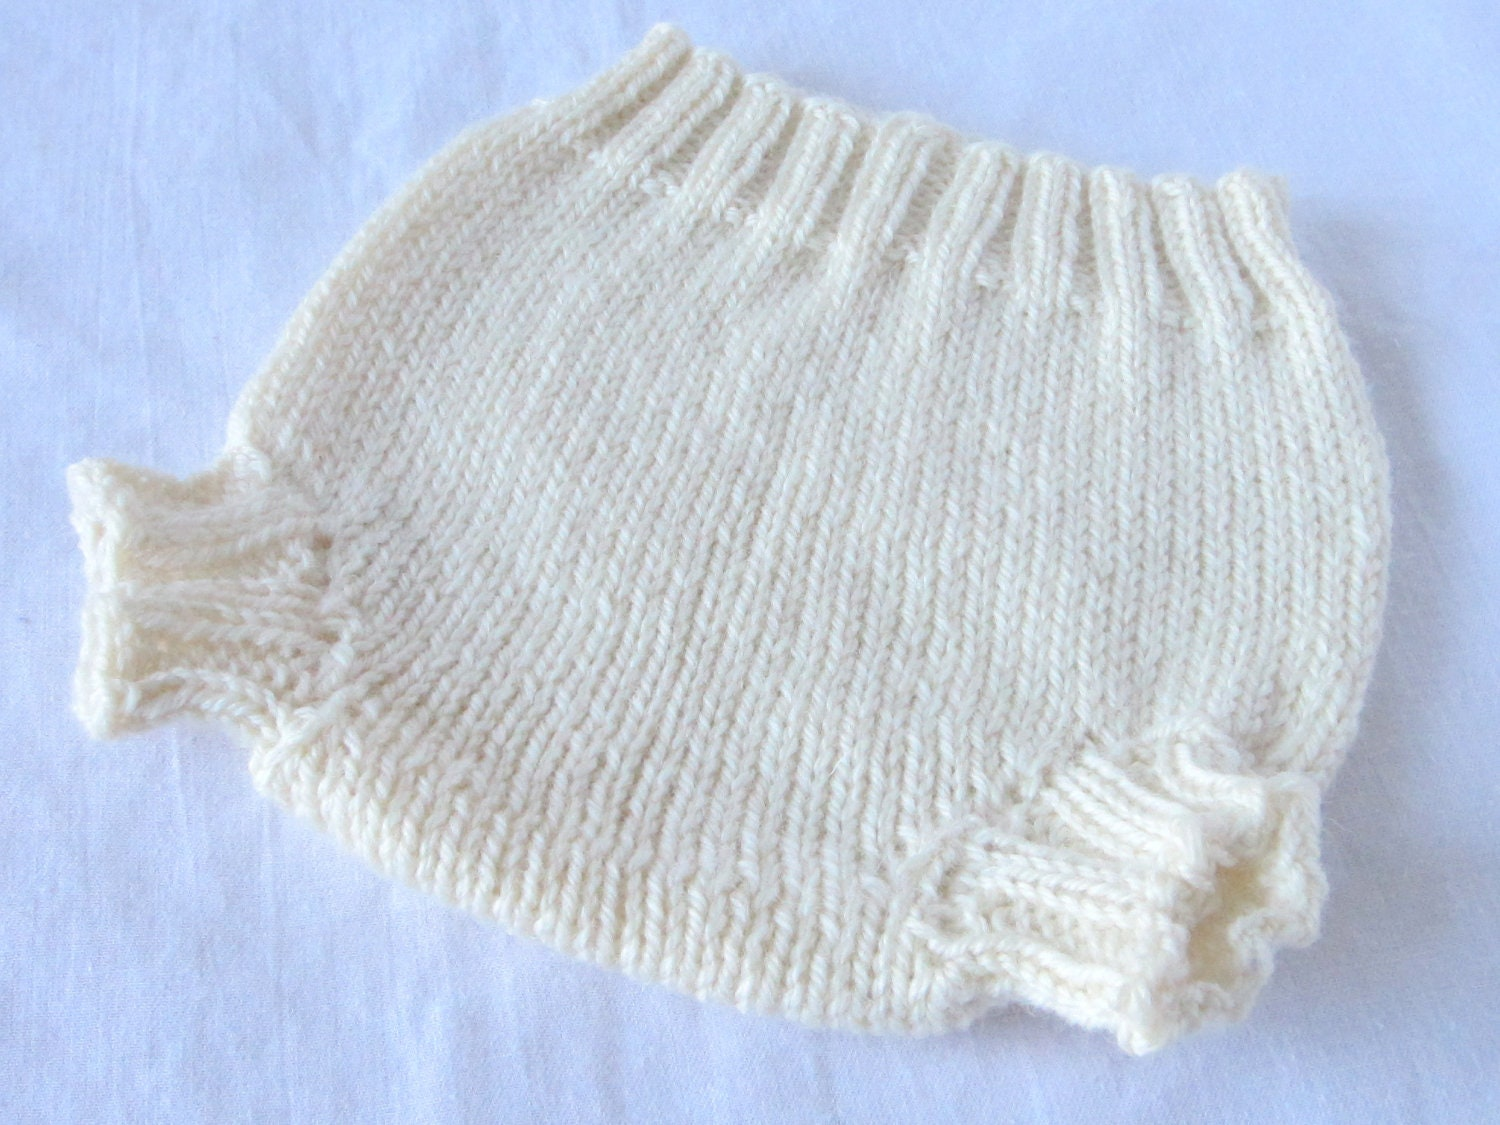 Knitting Pattern For Wool Diaper Covers : Knit Wool Soaker Diaper Cover custom made to order